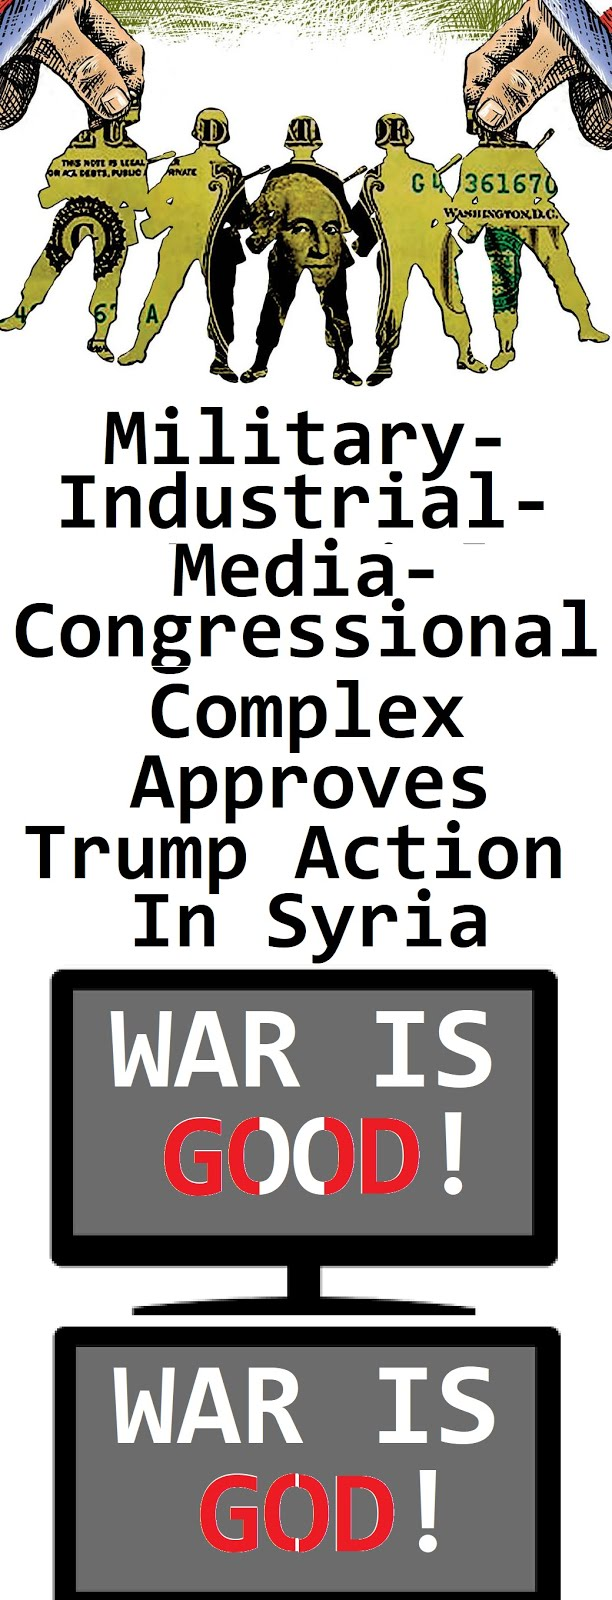 Military-Industrial-Media-Congressional Complex Approves Trump Action in Syria